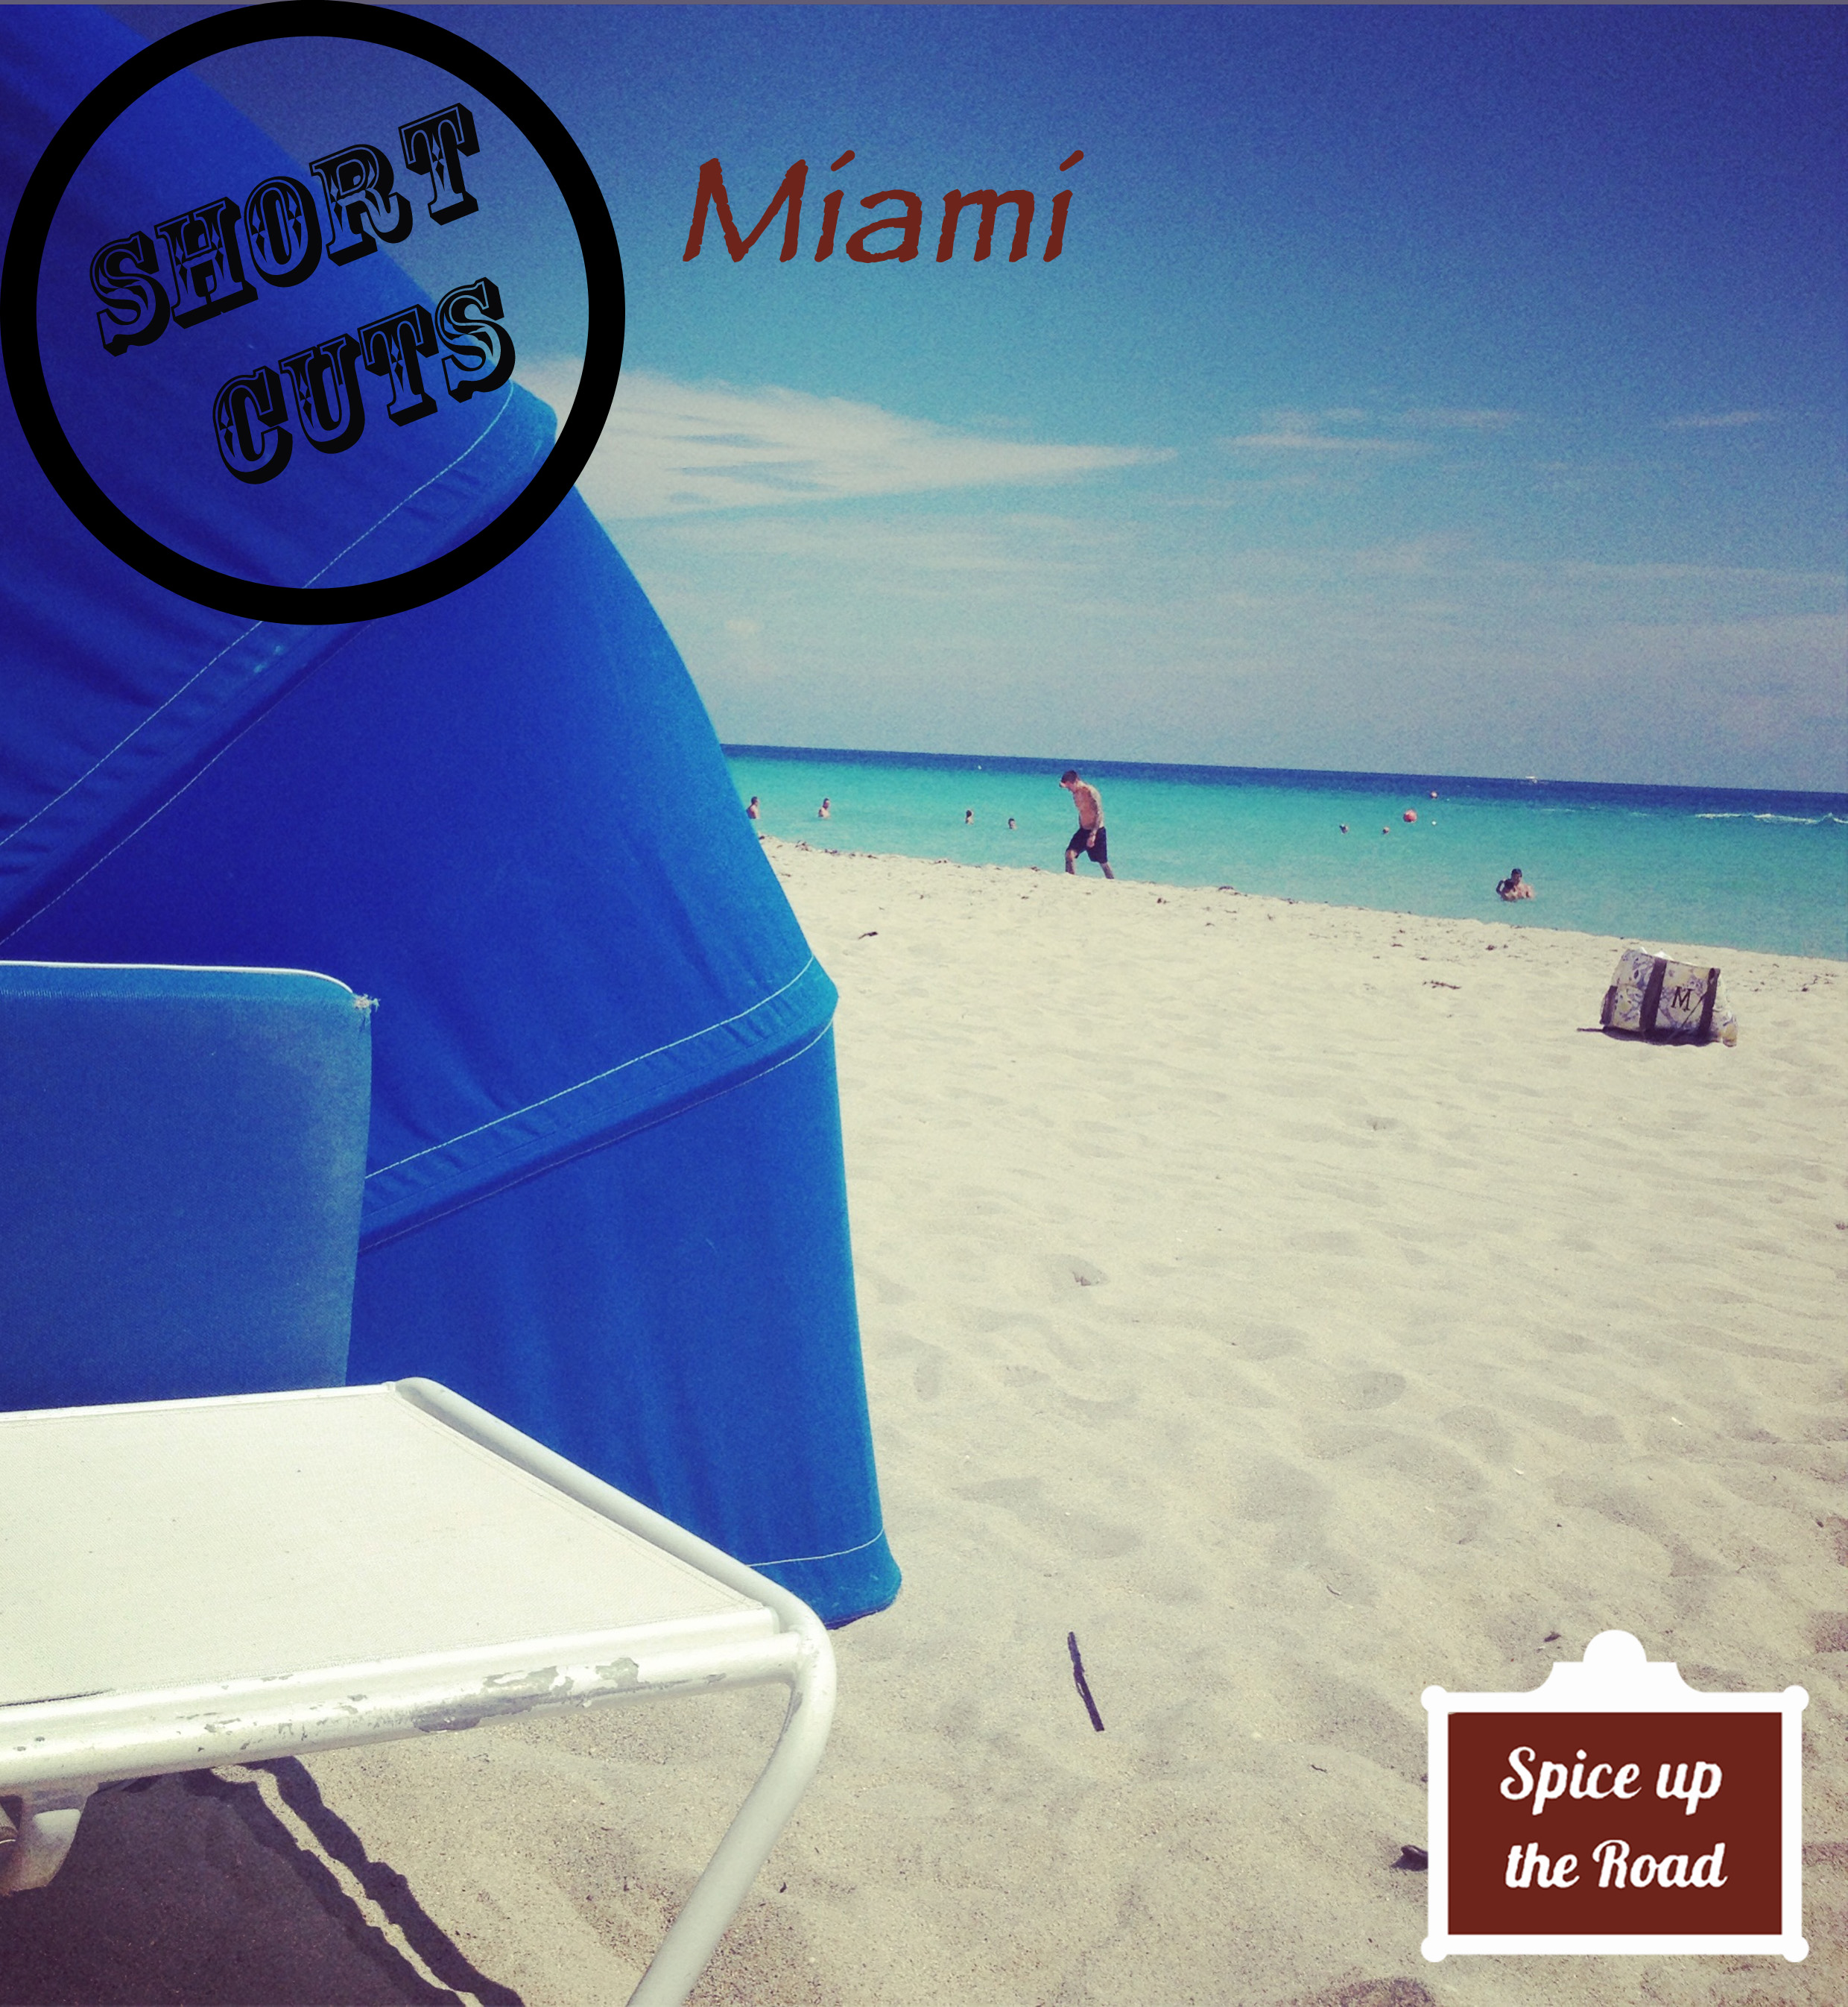 shortcuts _ miami